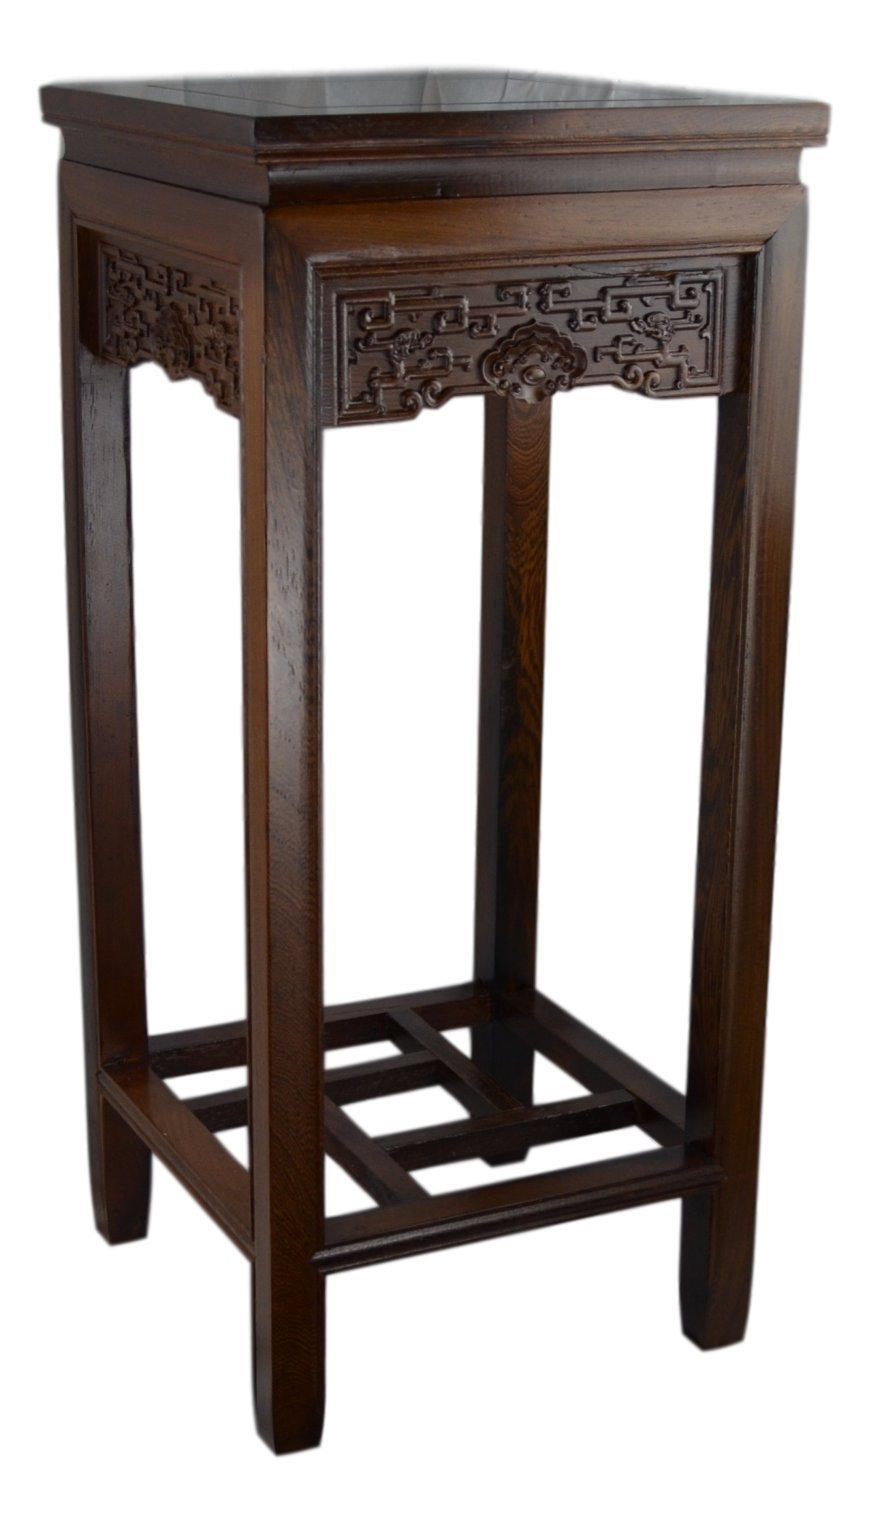 Festcool Rosewood Square Table, Planter Stand Plant Pot Display Stand Lamp Table (27'') by Festcool